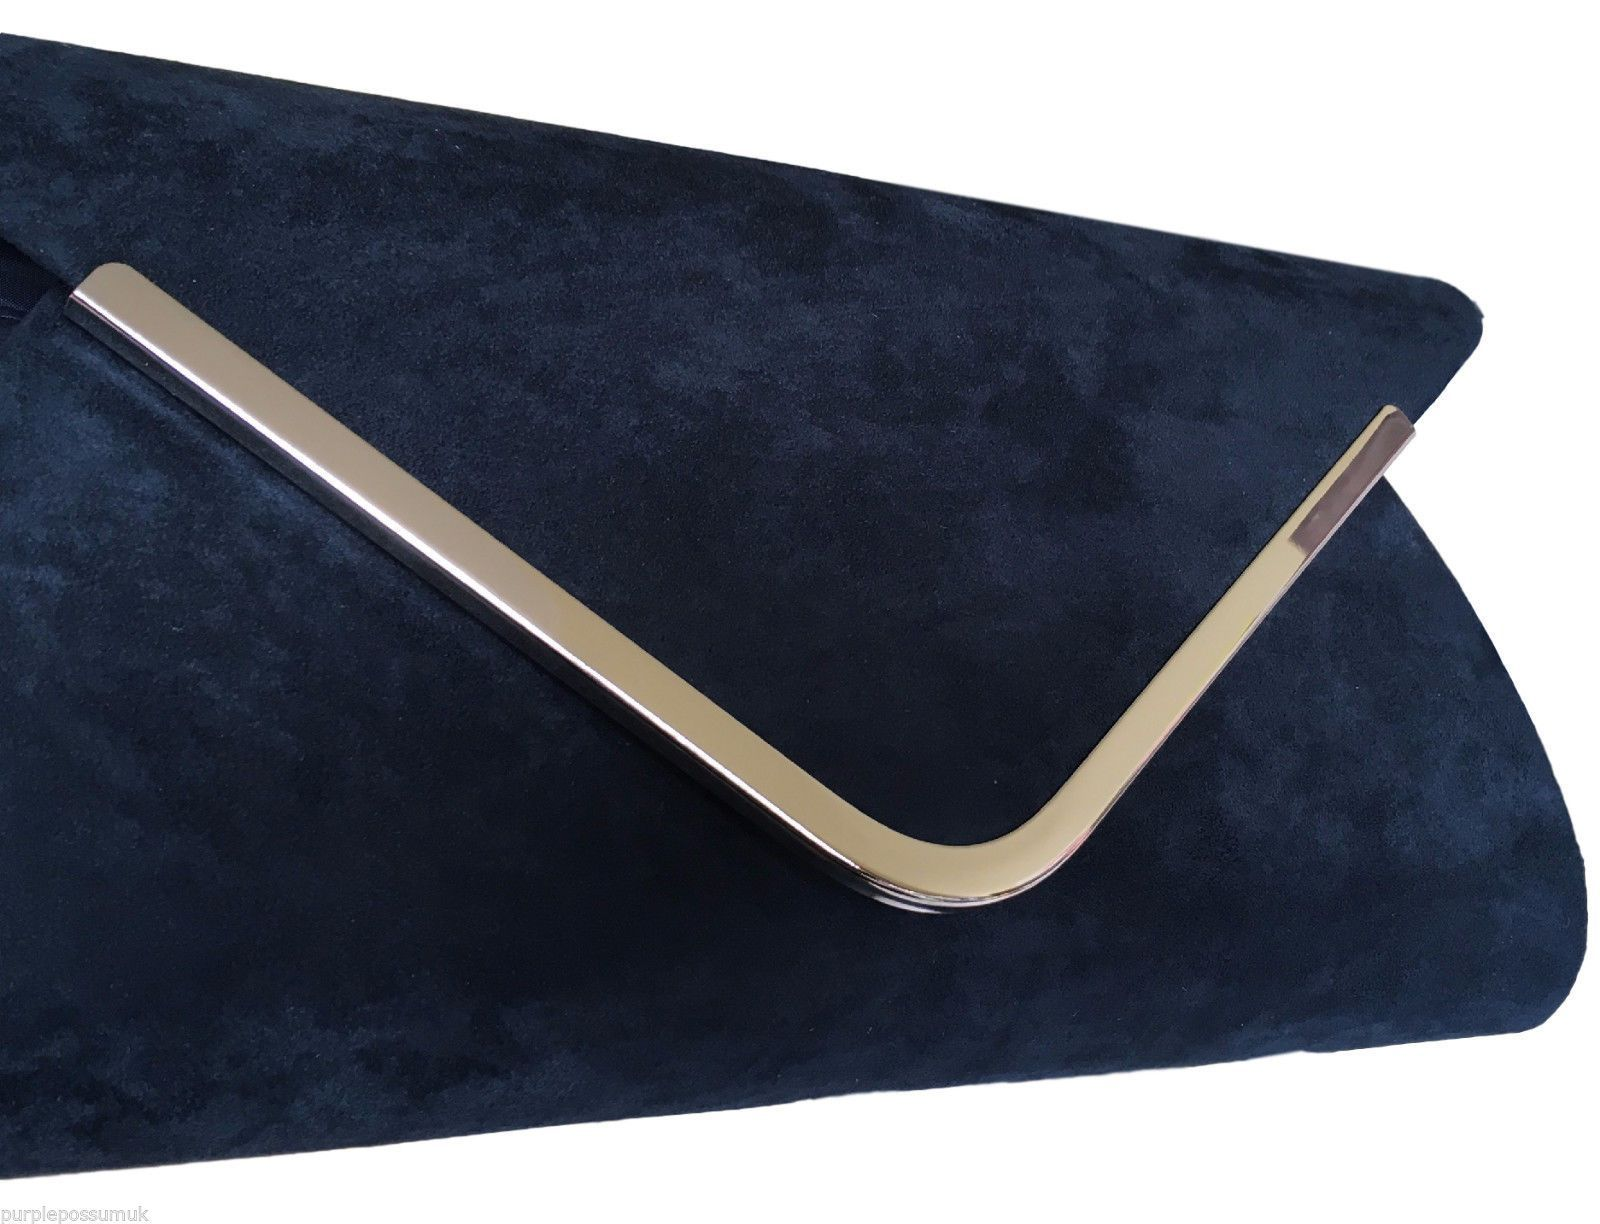 17 Best ideas about Navy Clutch Bags on Pinterest | Navy clutches ...